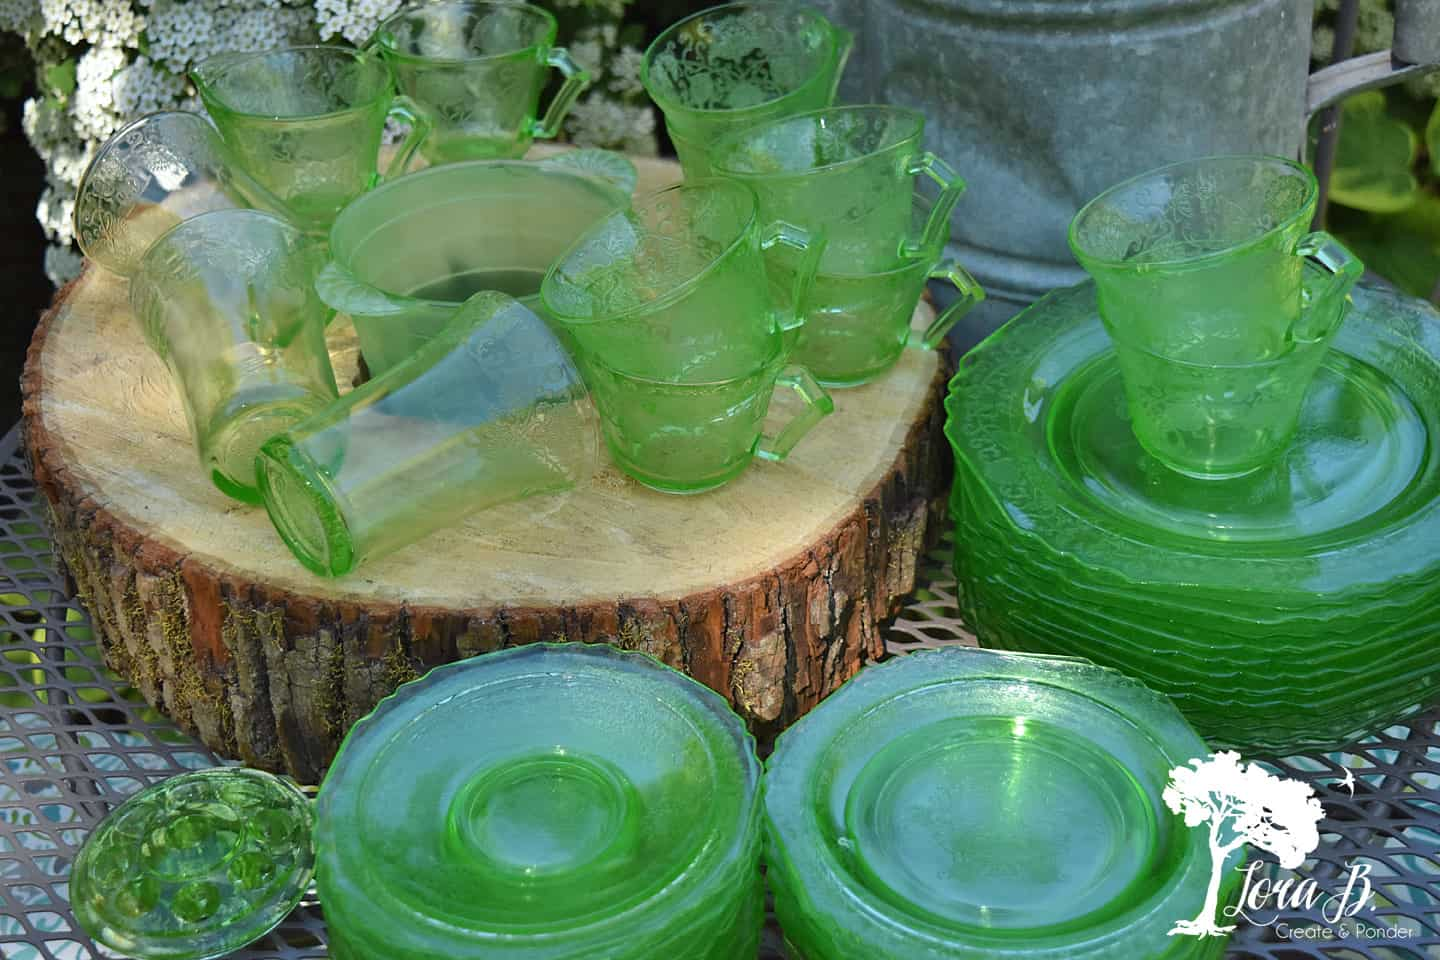 Green depression glass collection.